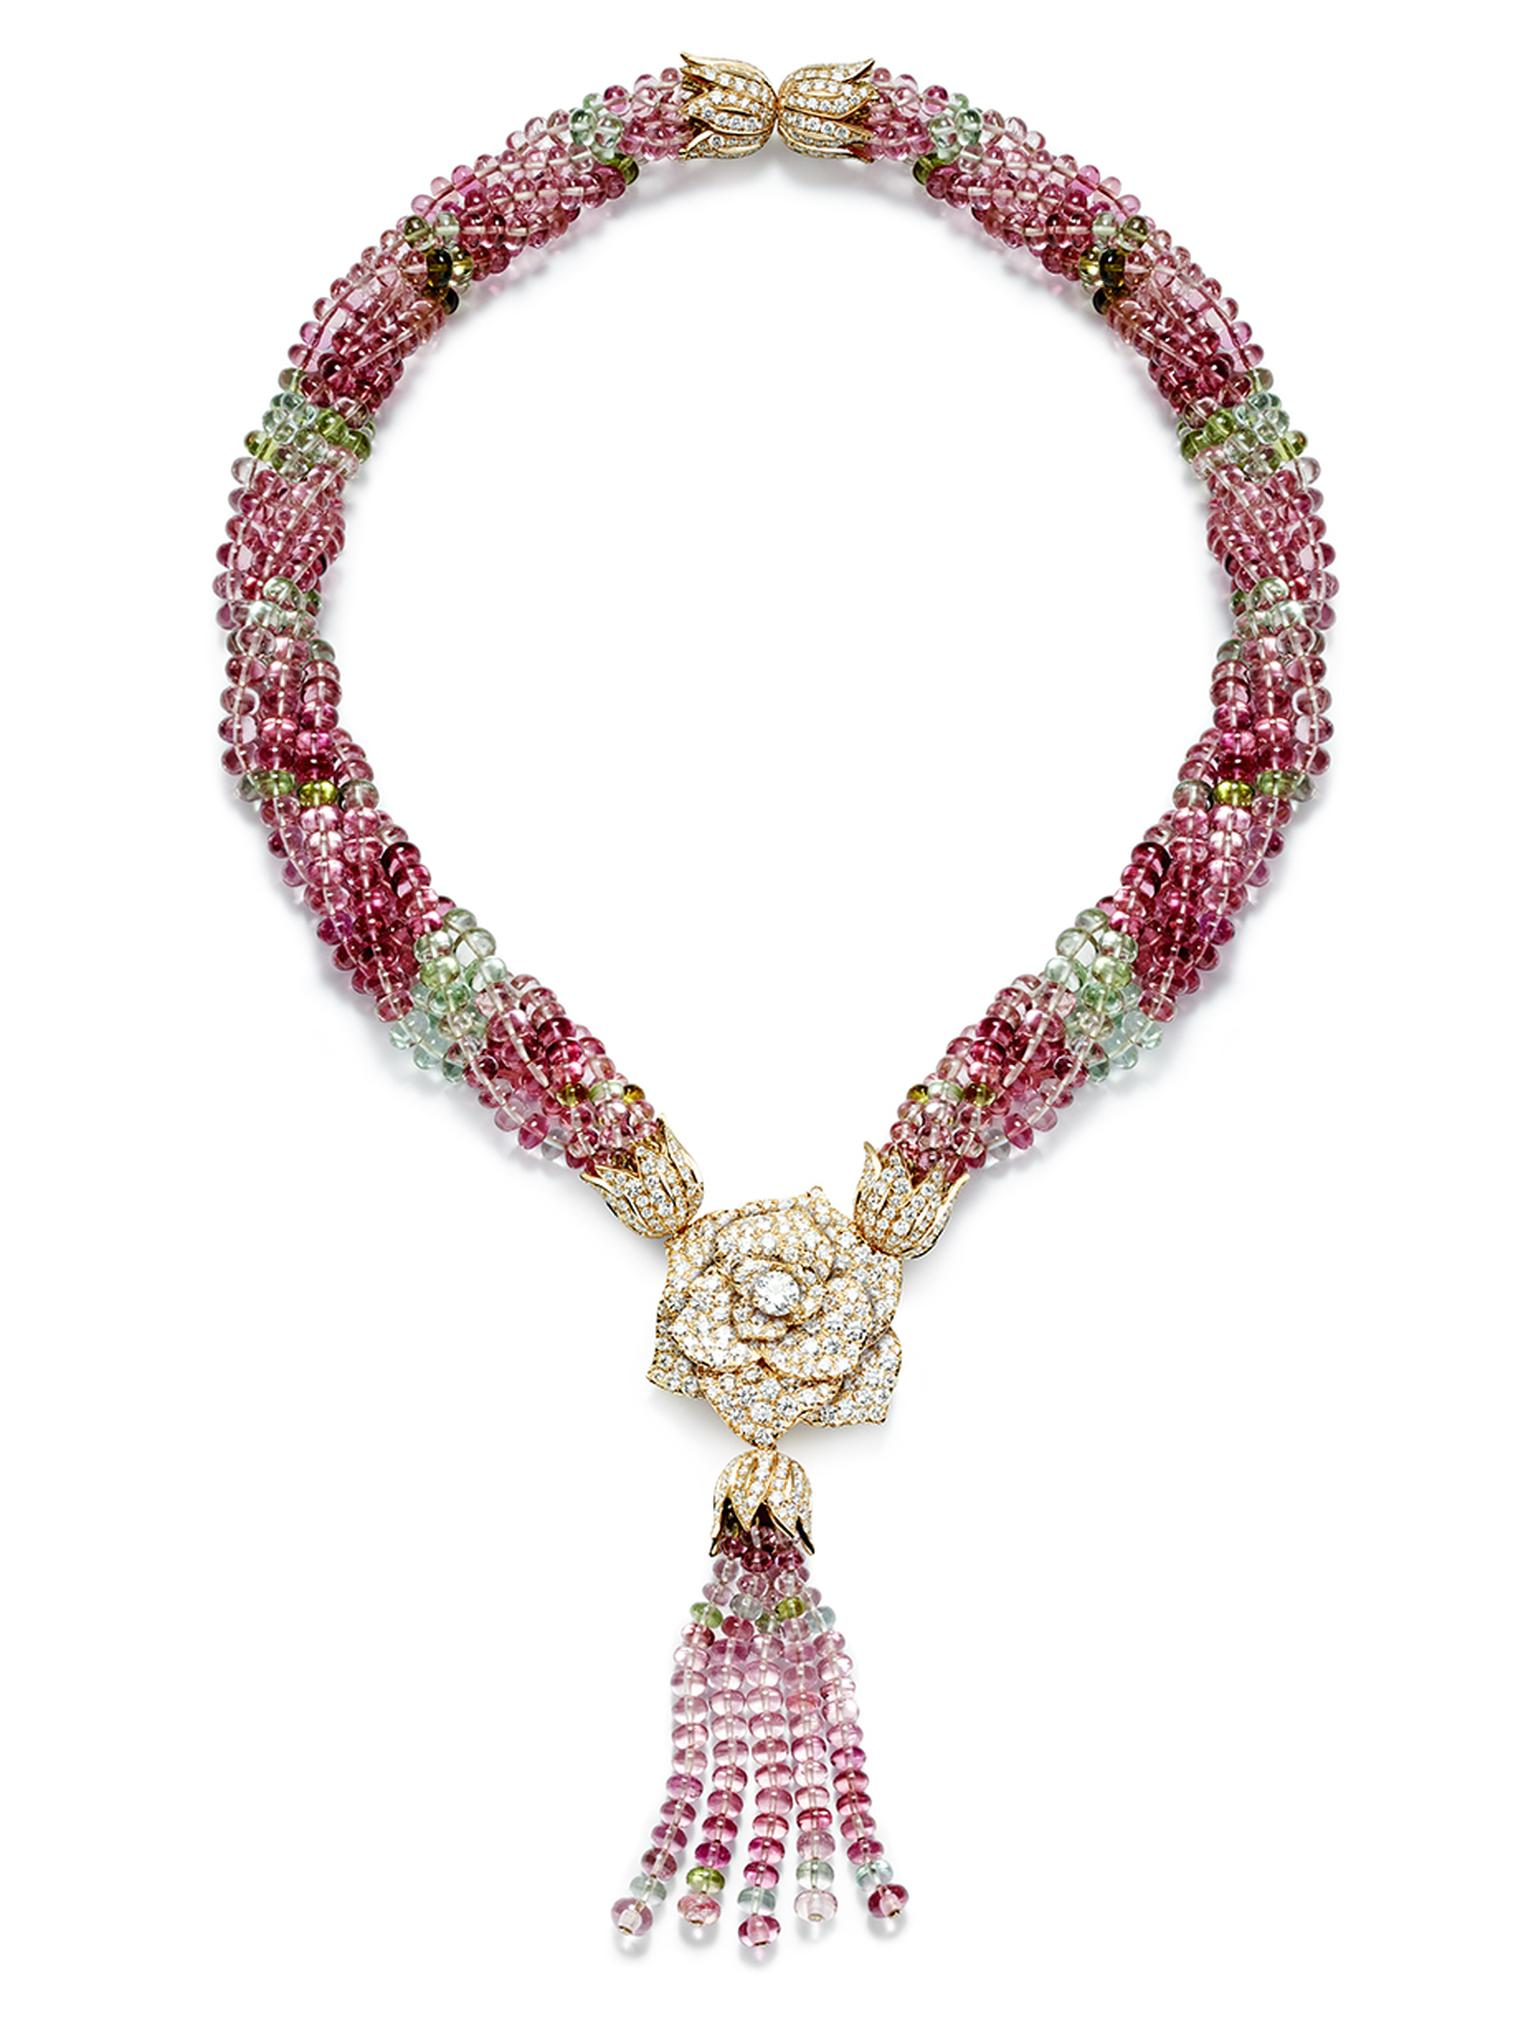 The New Rose Passion High Jewellery